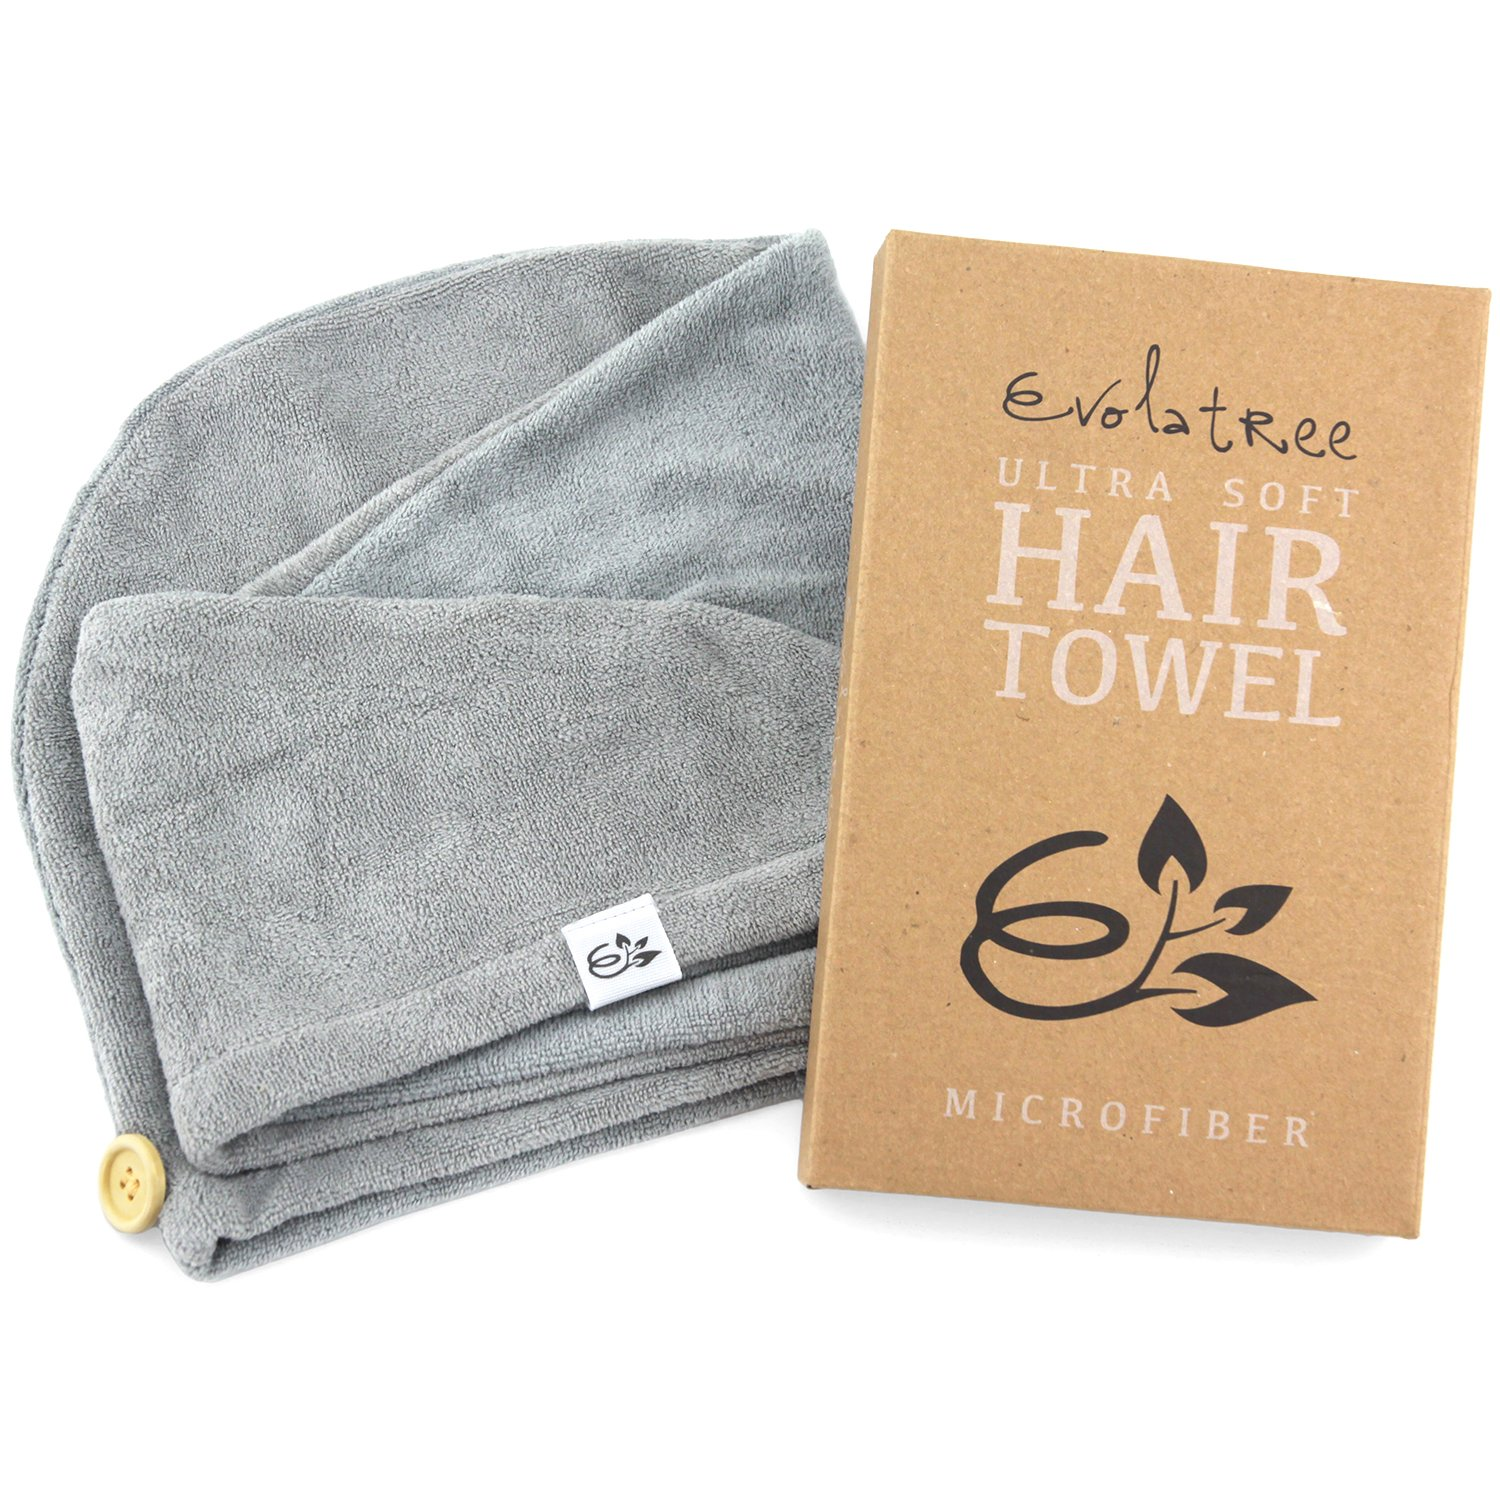 Evolatree Microfiber Hair Towel Wrap - Quick Magic Hair Dry Hat - Anti Frizz Products For Curly Hair Drying Towels - Neutral Gray by Evolatree (Image #1)